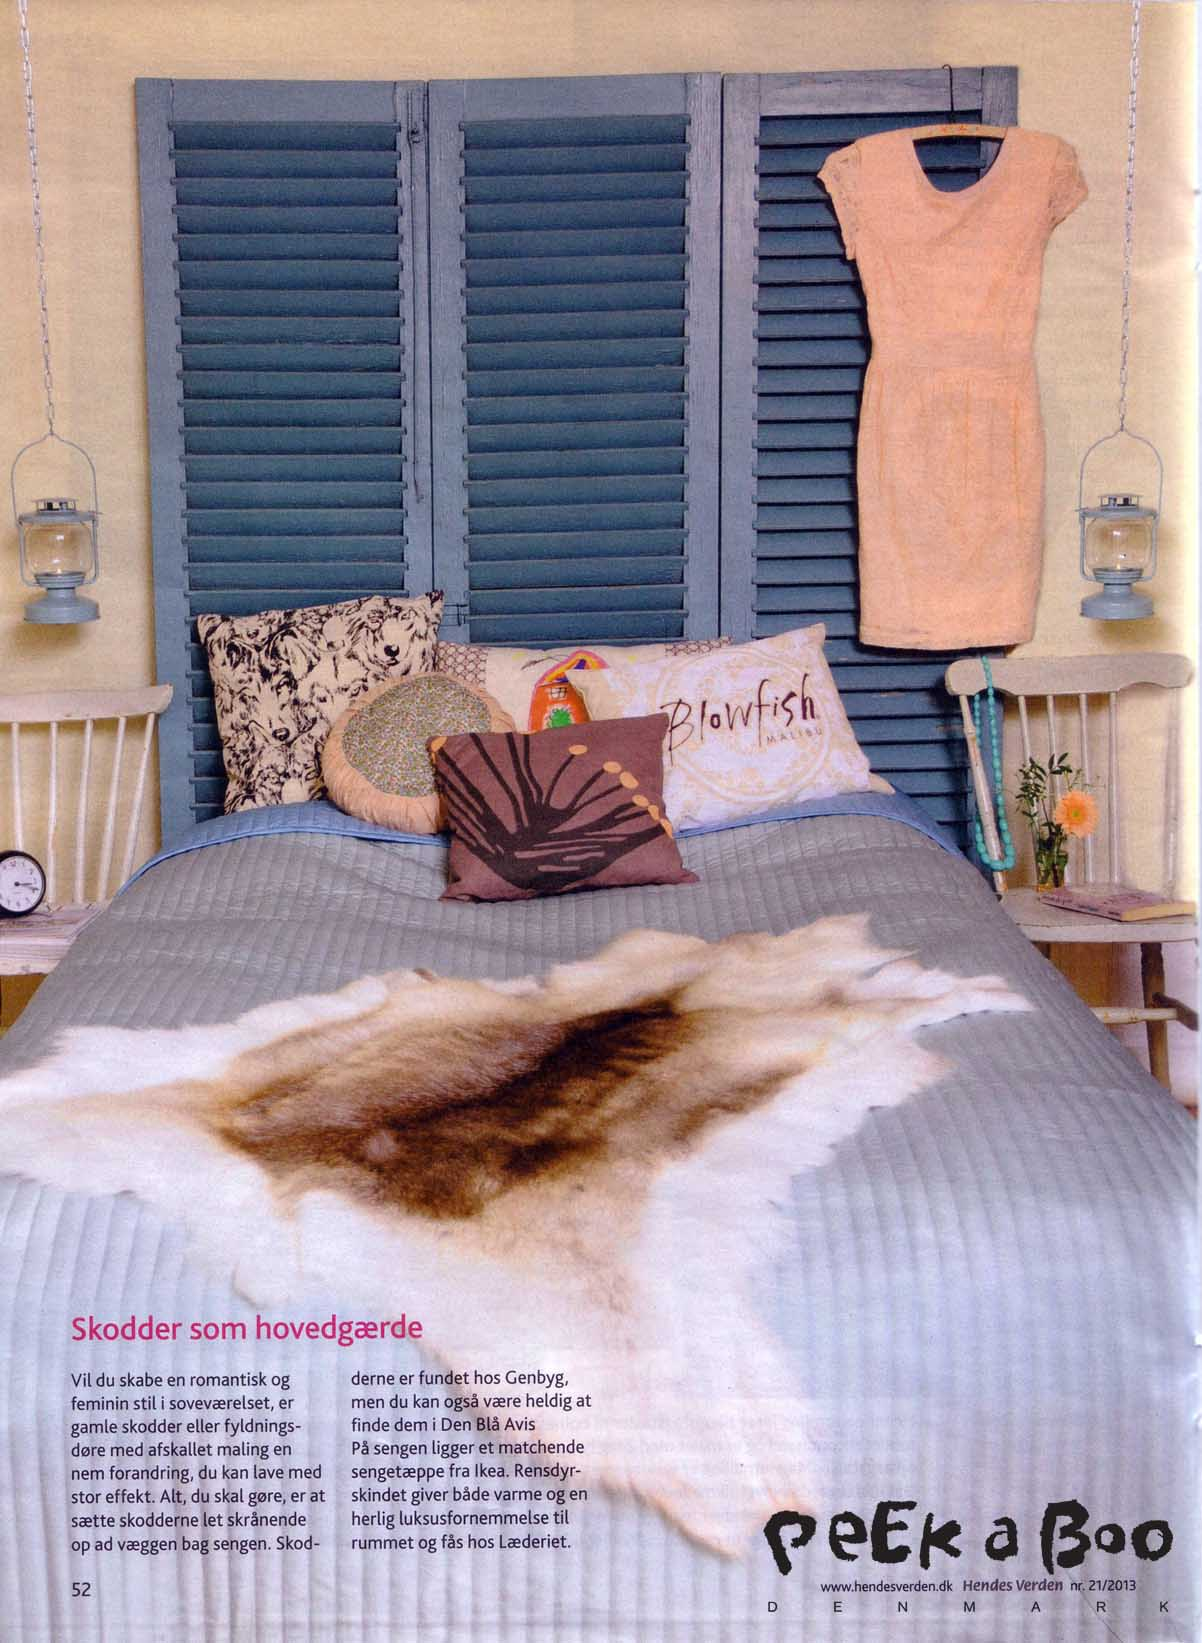 Hendes Verden nr. 21 styling and DIY ideas by Peekaboo design